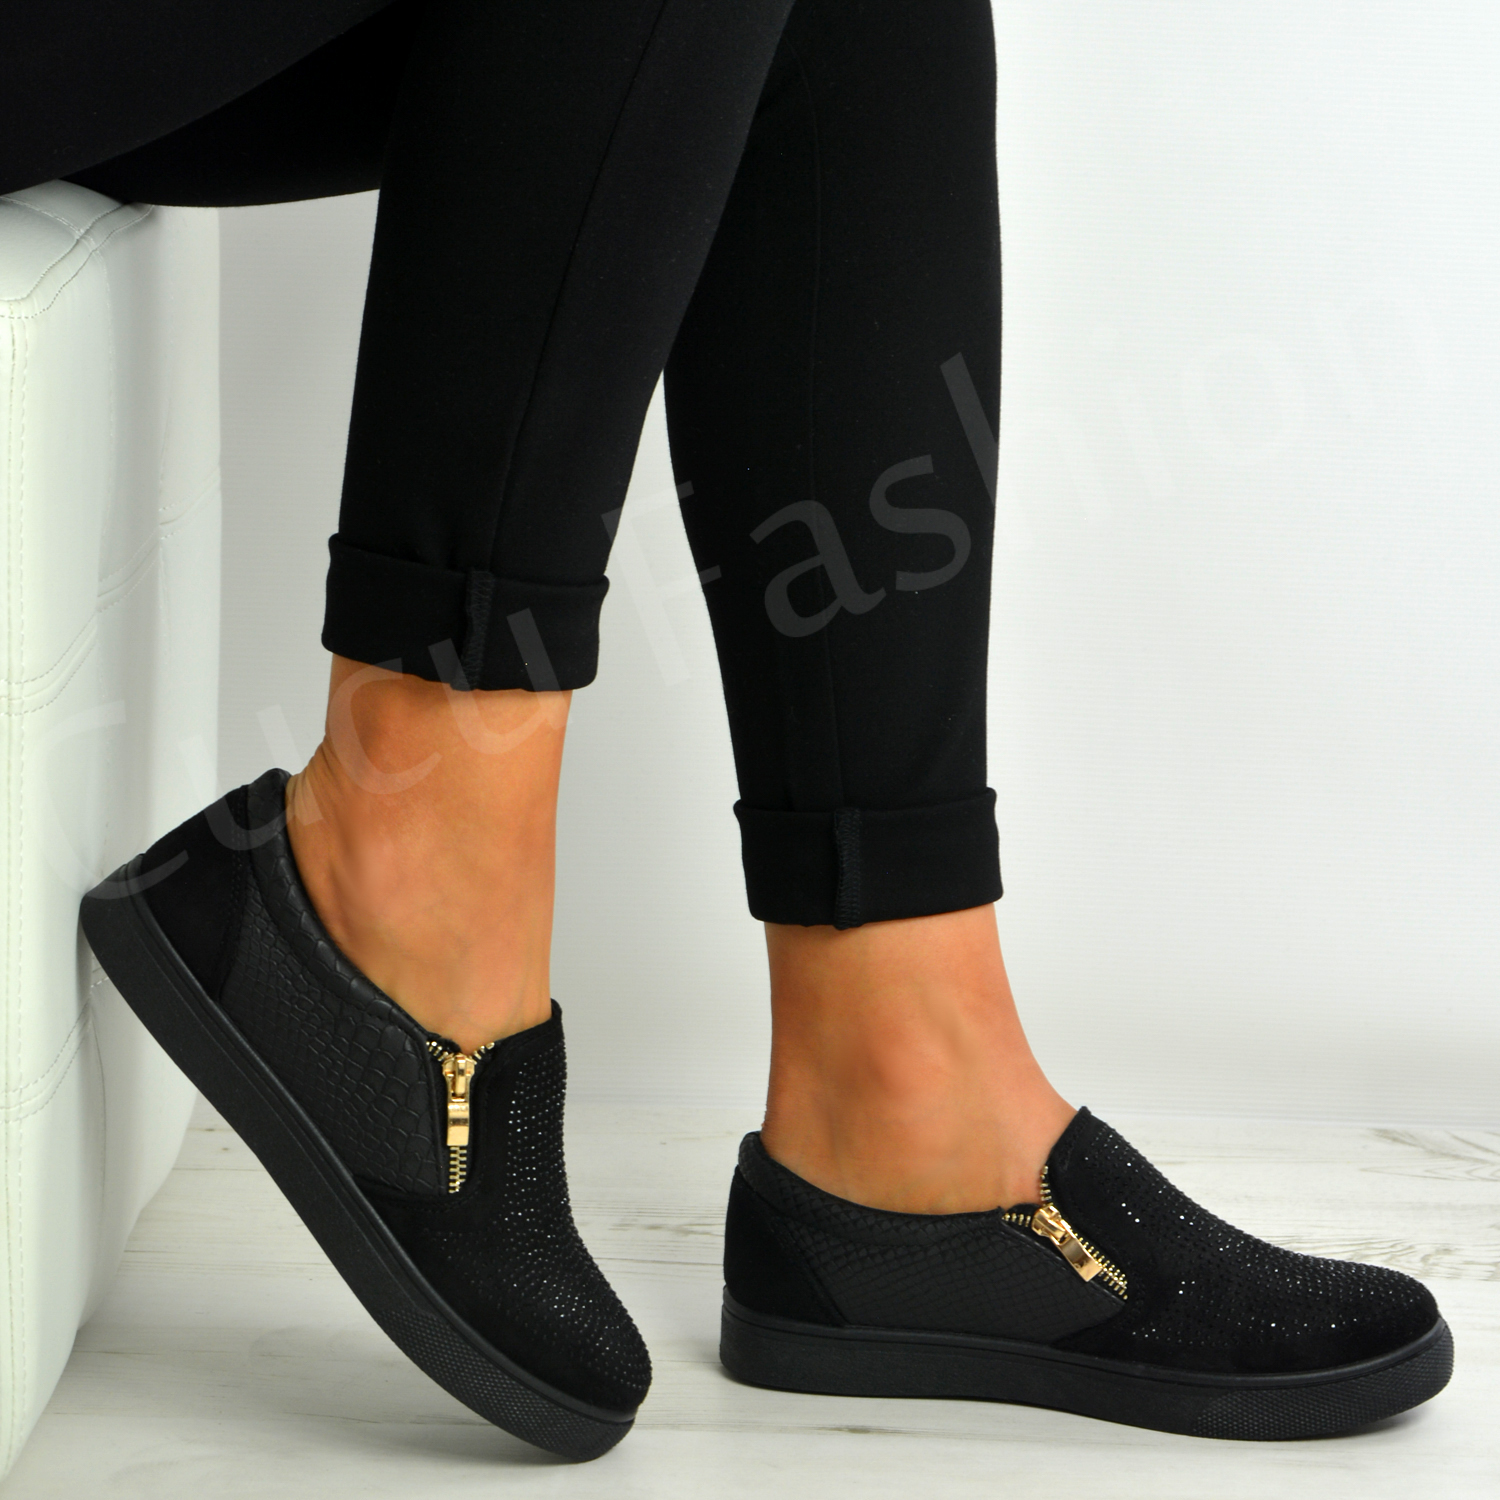 New Womens Ladies Studded Slip On Trainers Flat Sneakers Shoes Size Uk 3-8